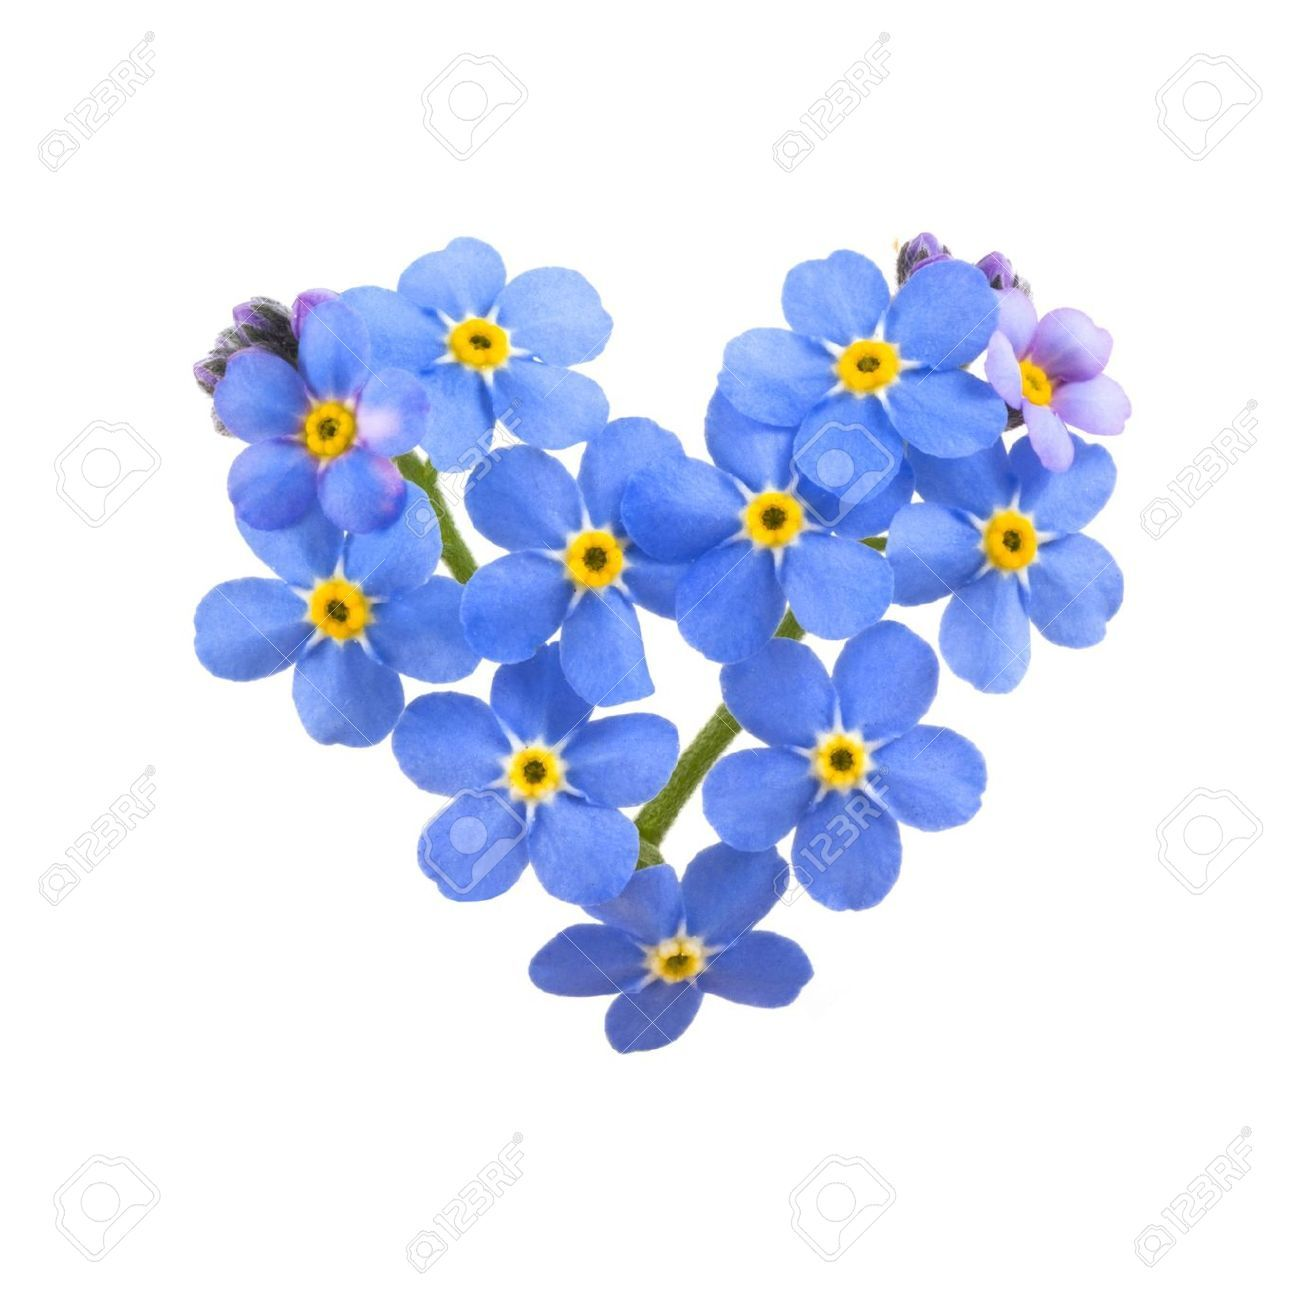 Forget me not clipart 4 » Clipart Station.